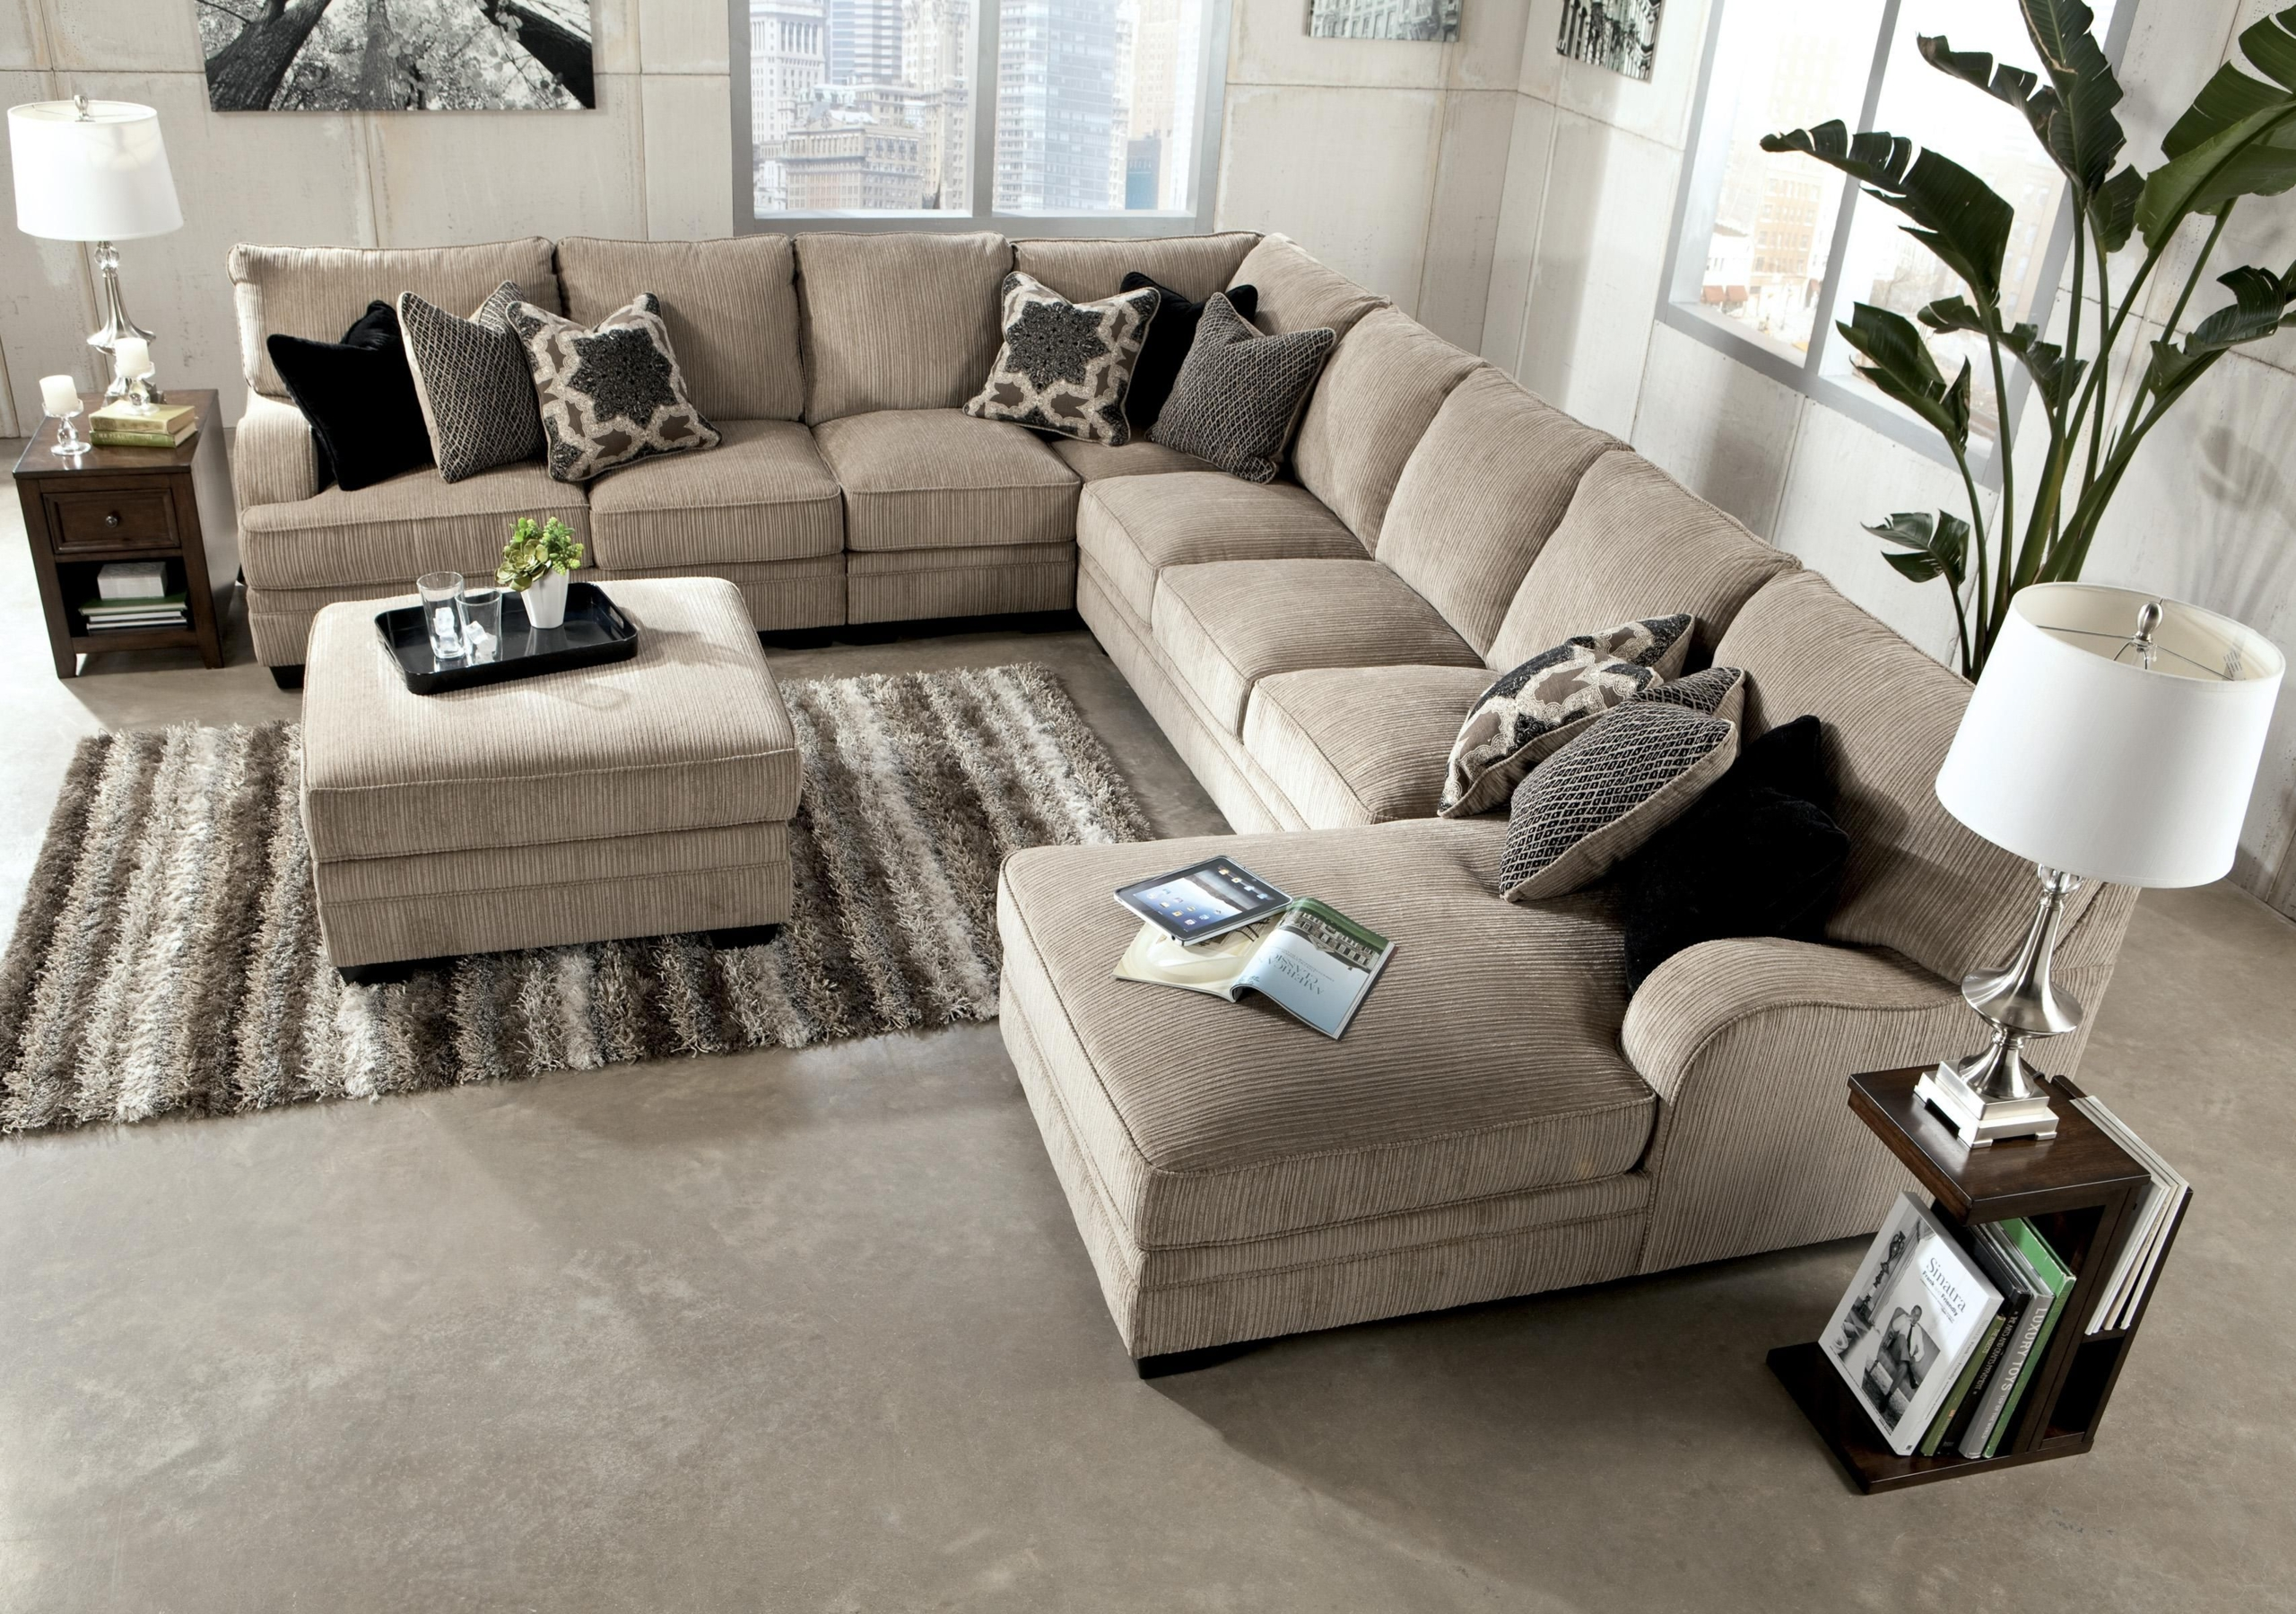 Beau Extra Large Sectional Sofas With Chaise | Chaise Design